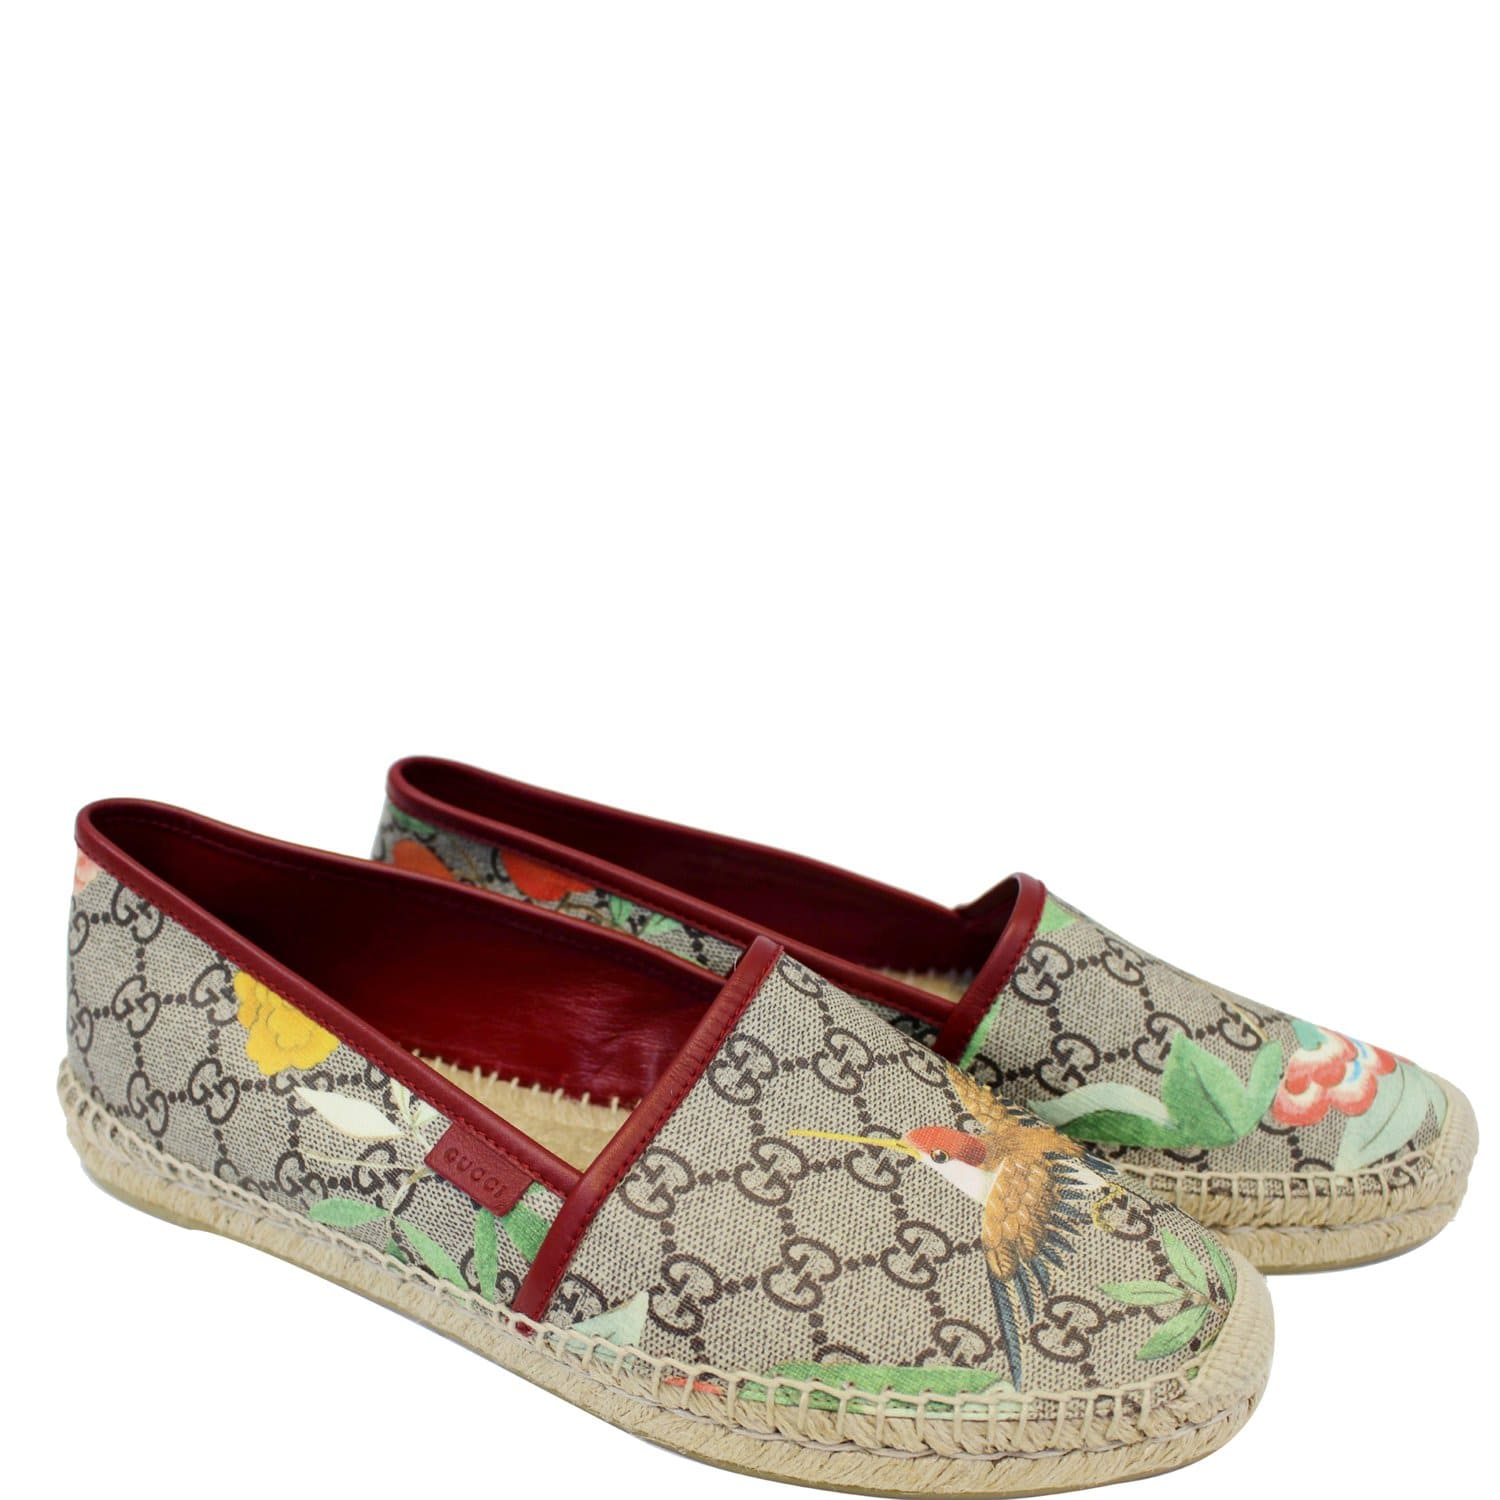 77068ad7a19 GUCCI GG Blooms Supreme Espadrille Flats Size 42-US